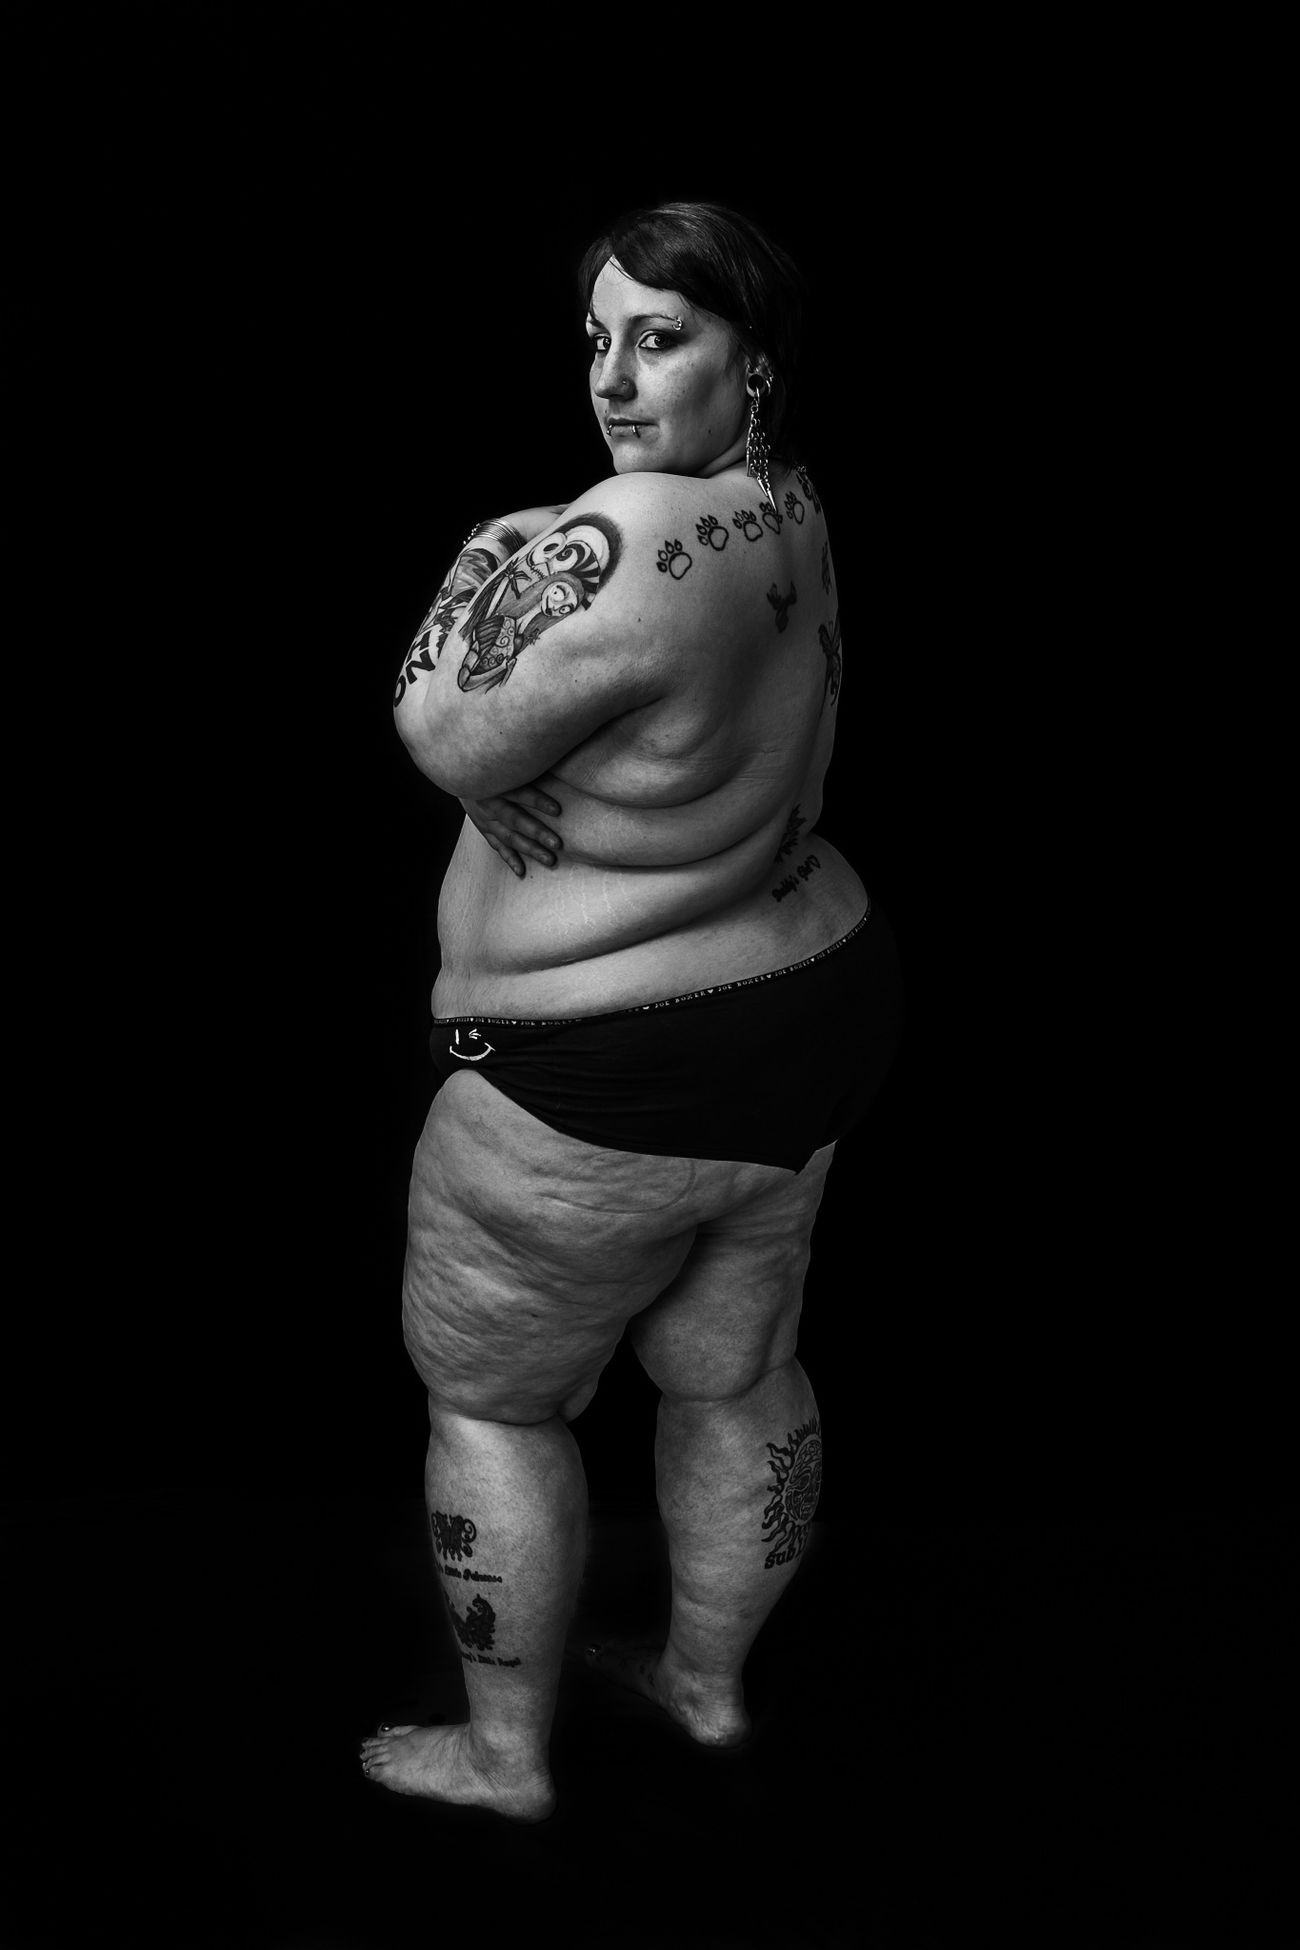 the power of embracing your difference BodyDiversity SOSea Portrait